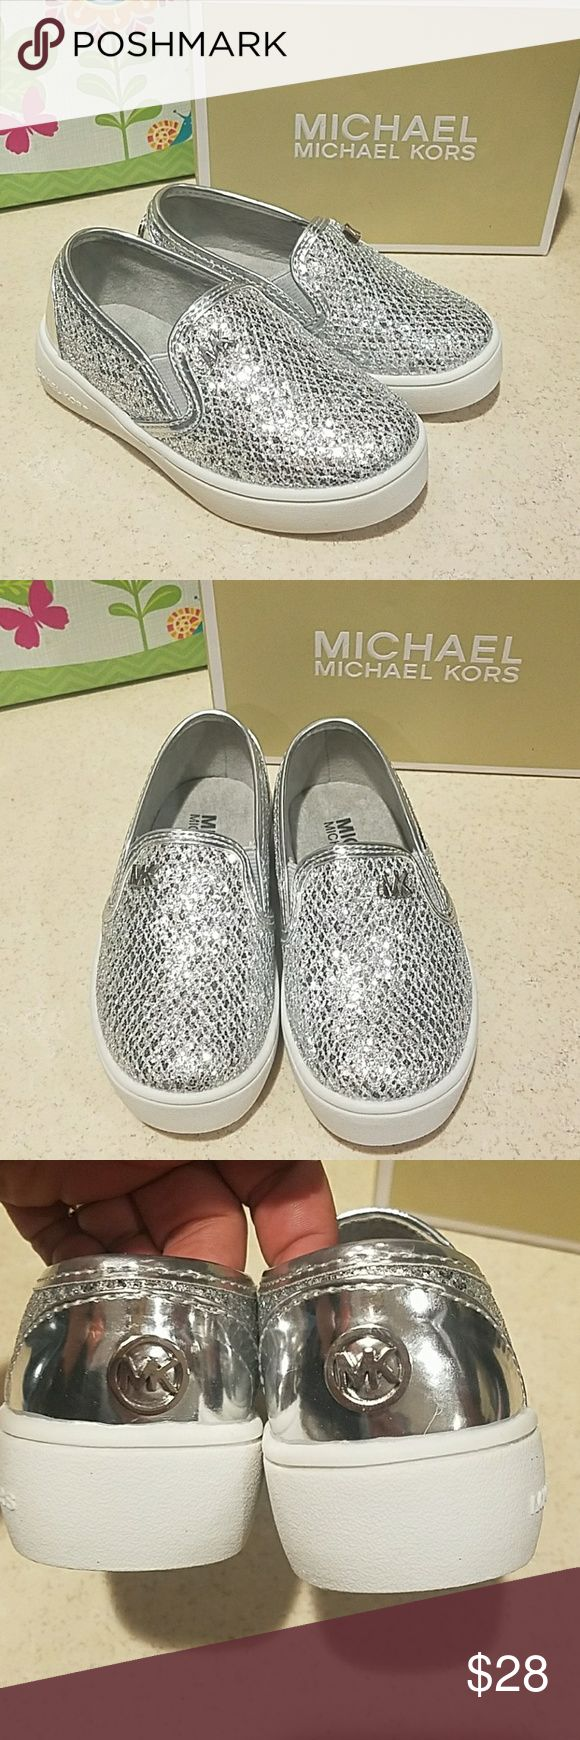 Michael Kors Slip on Sneakers Toddler sz 8 NIB Absolutely GORGEOUS pair of  Michael Kors Slip